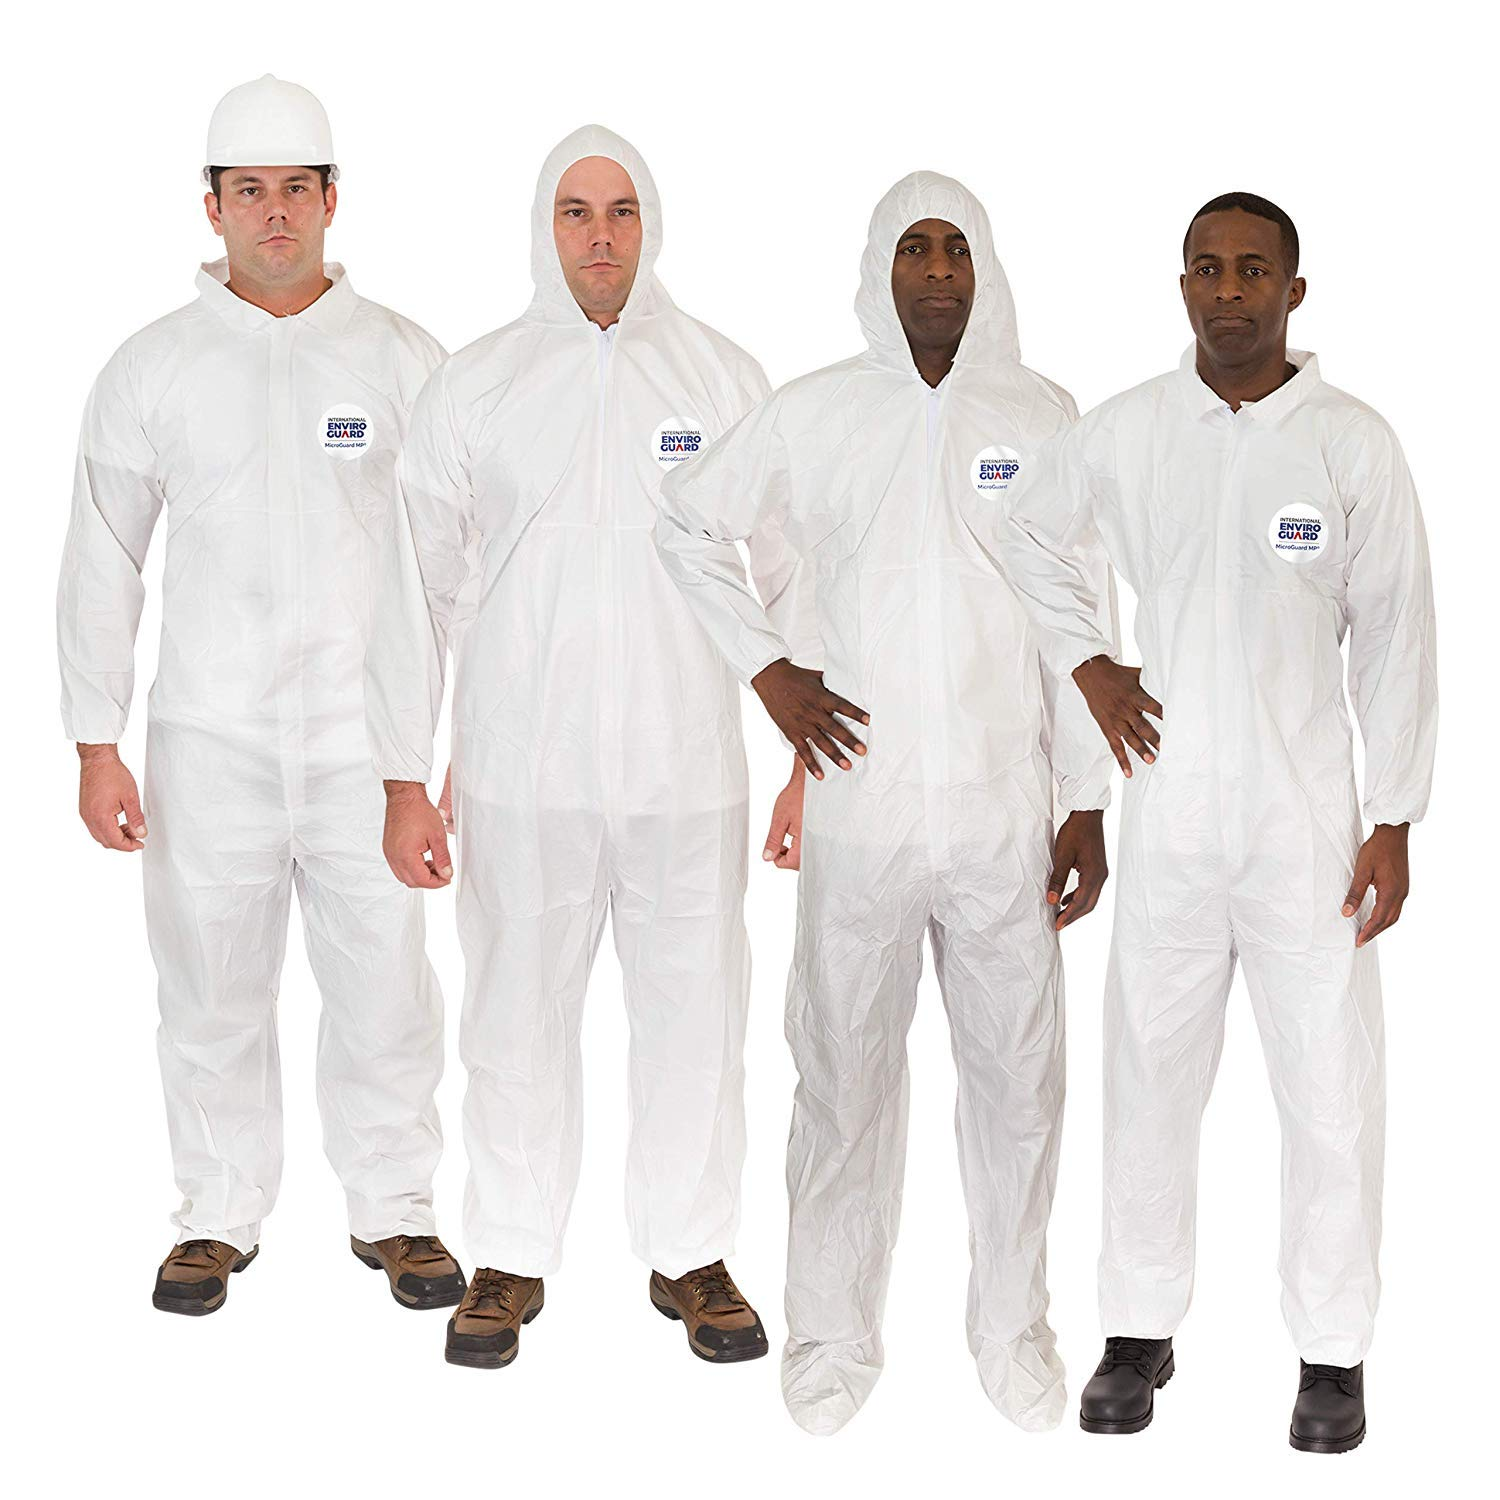 Microguard MP Microporous (White) | Particulate & Splash Protection/Disposable Hazmat Coverall with Elastic Wrist & Ankle for Paint and Particulates (XL, Case of 25) by Microguard MP (Image #2)